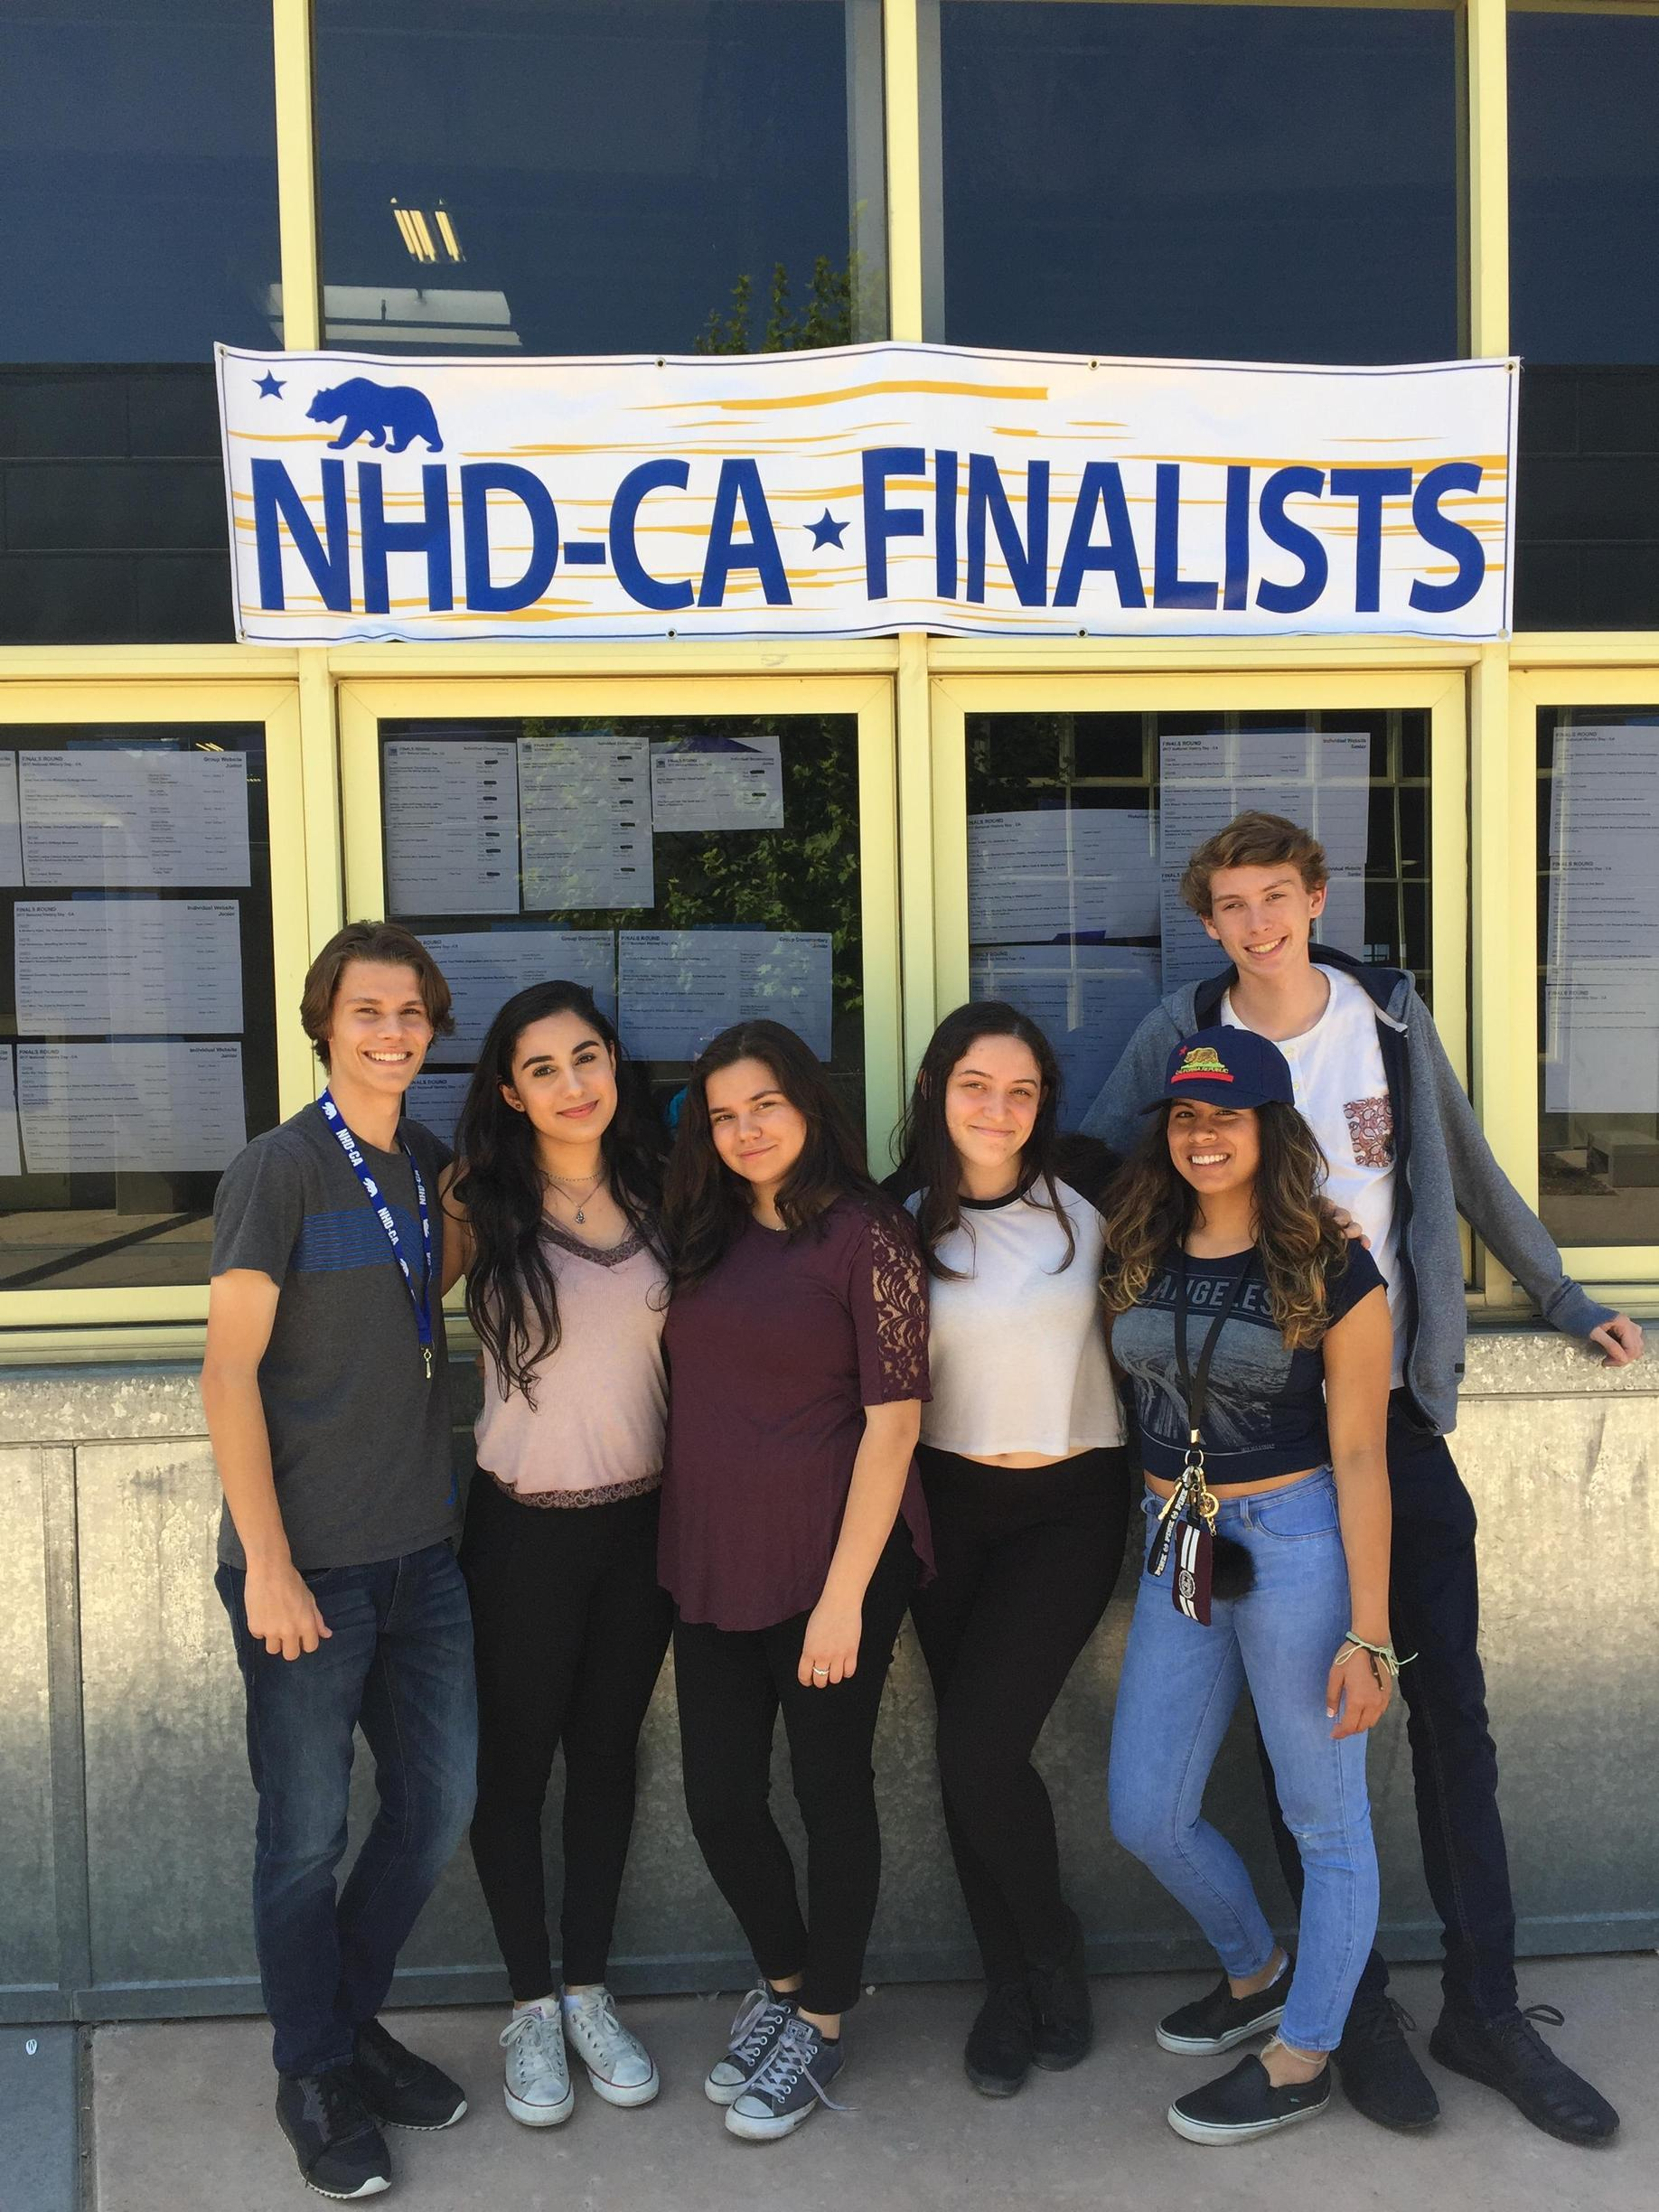 Group of students in front NHD CA Finalist sign